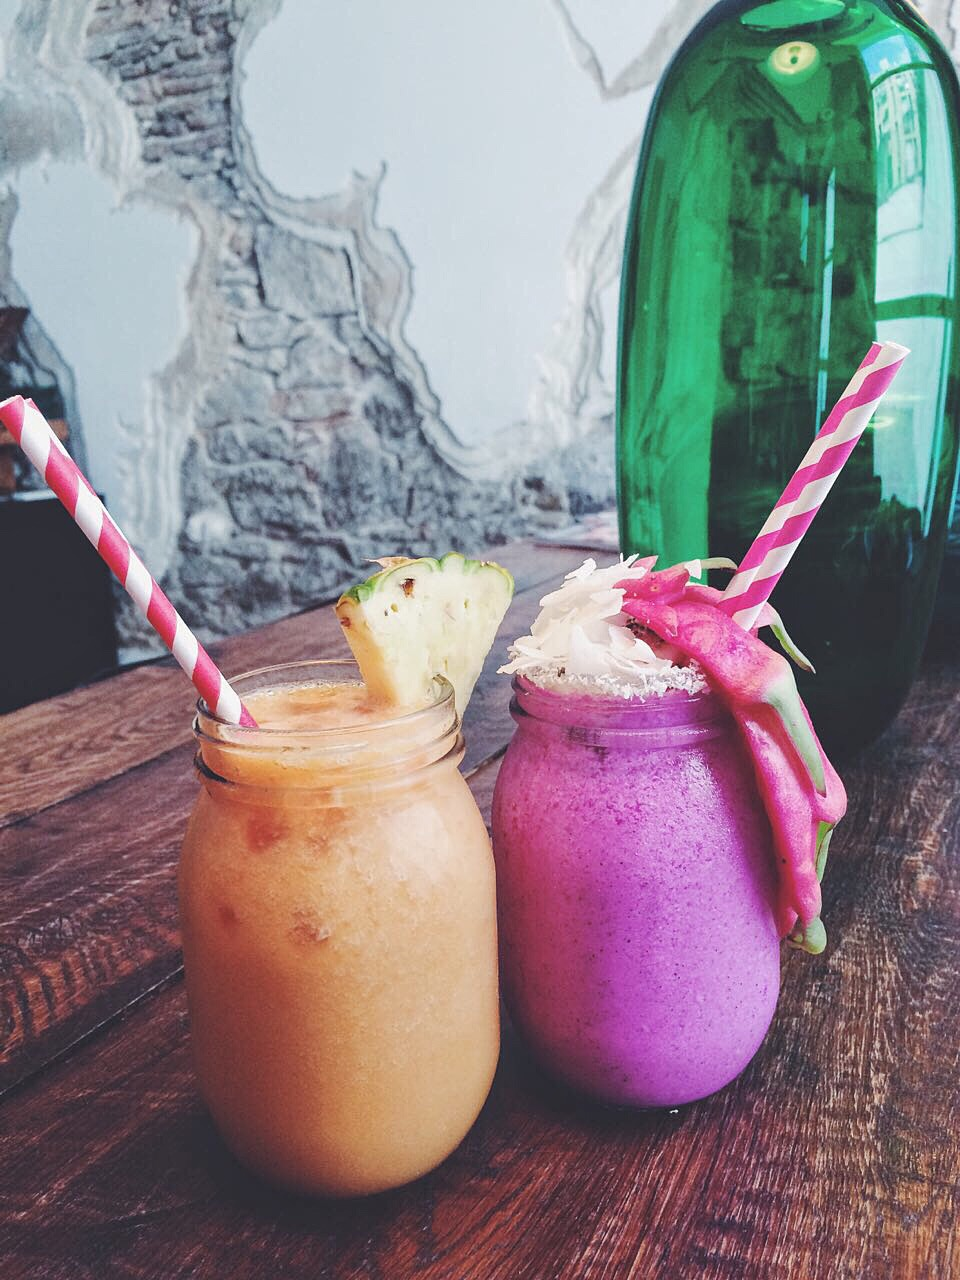 Smoothies at Tropico, Barcelona